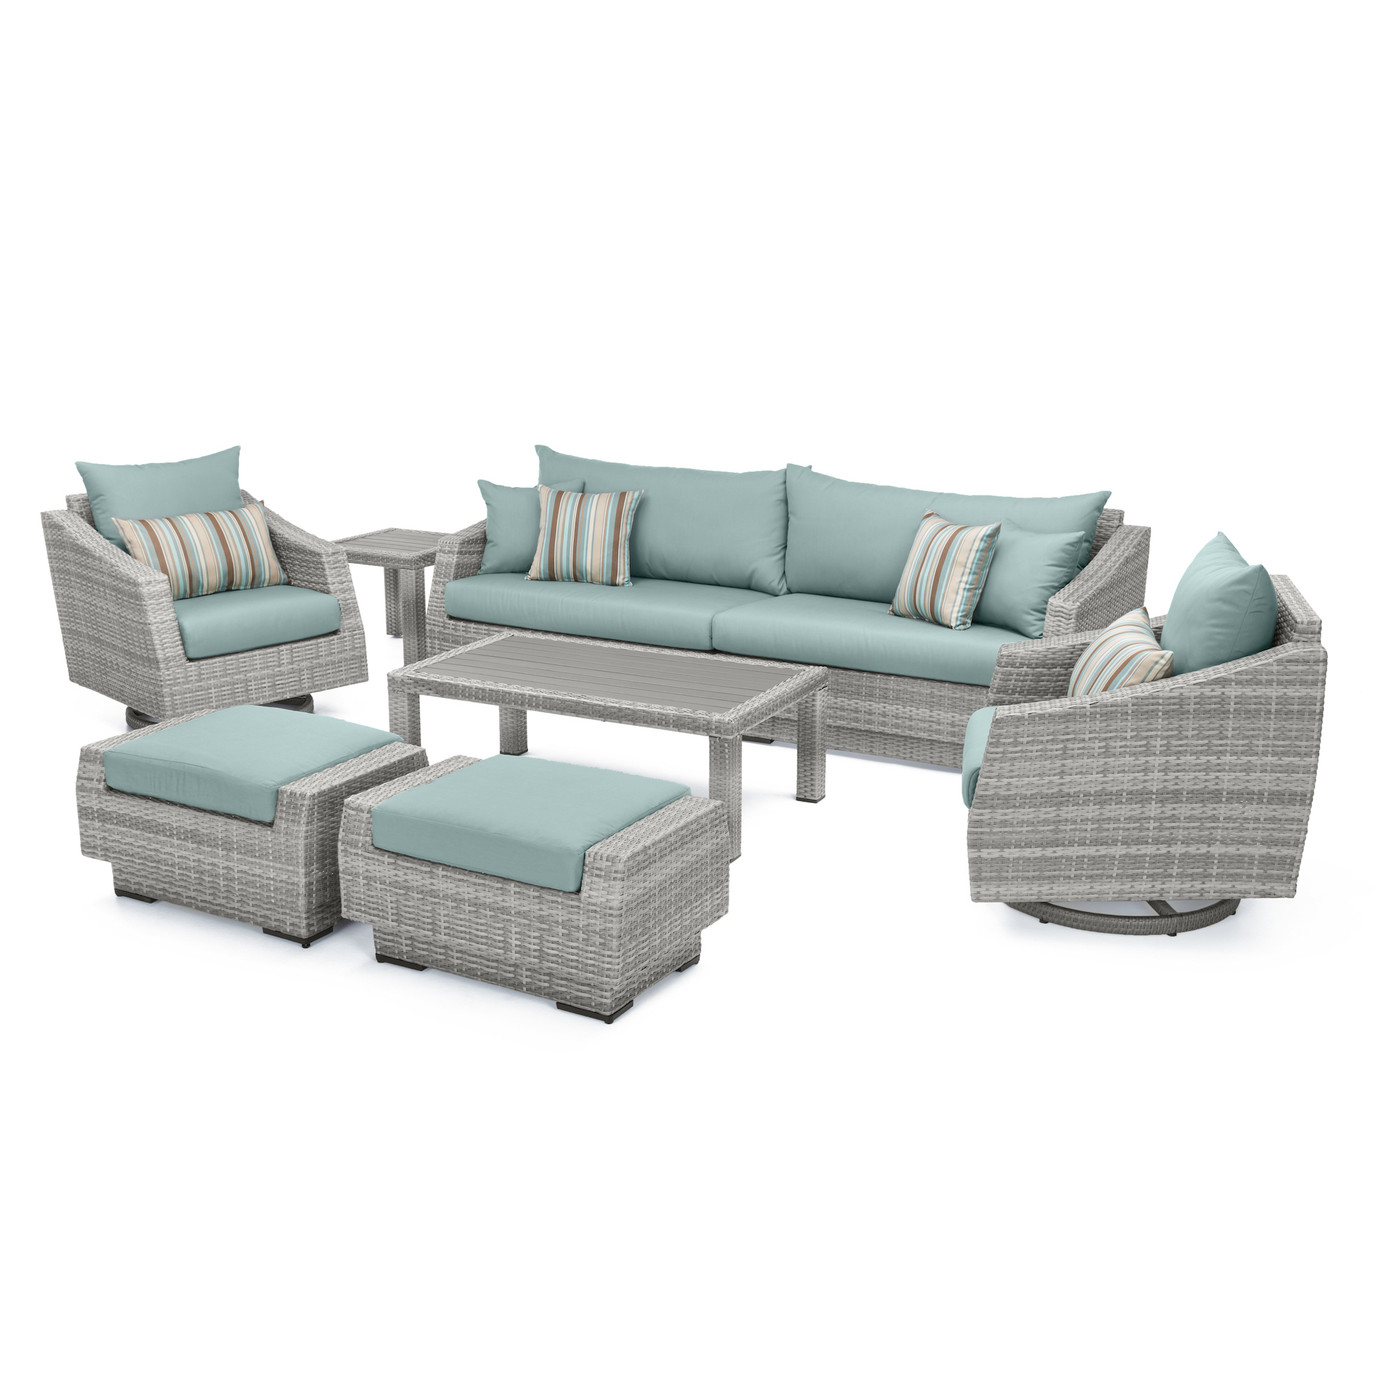 Cannes™ Deluxe 8pc Sofa & Club Chair Set - Bliss Blue